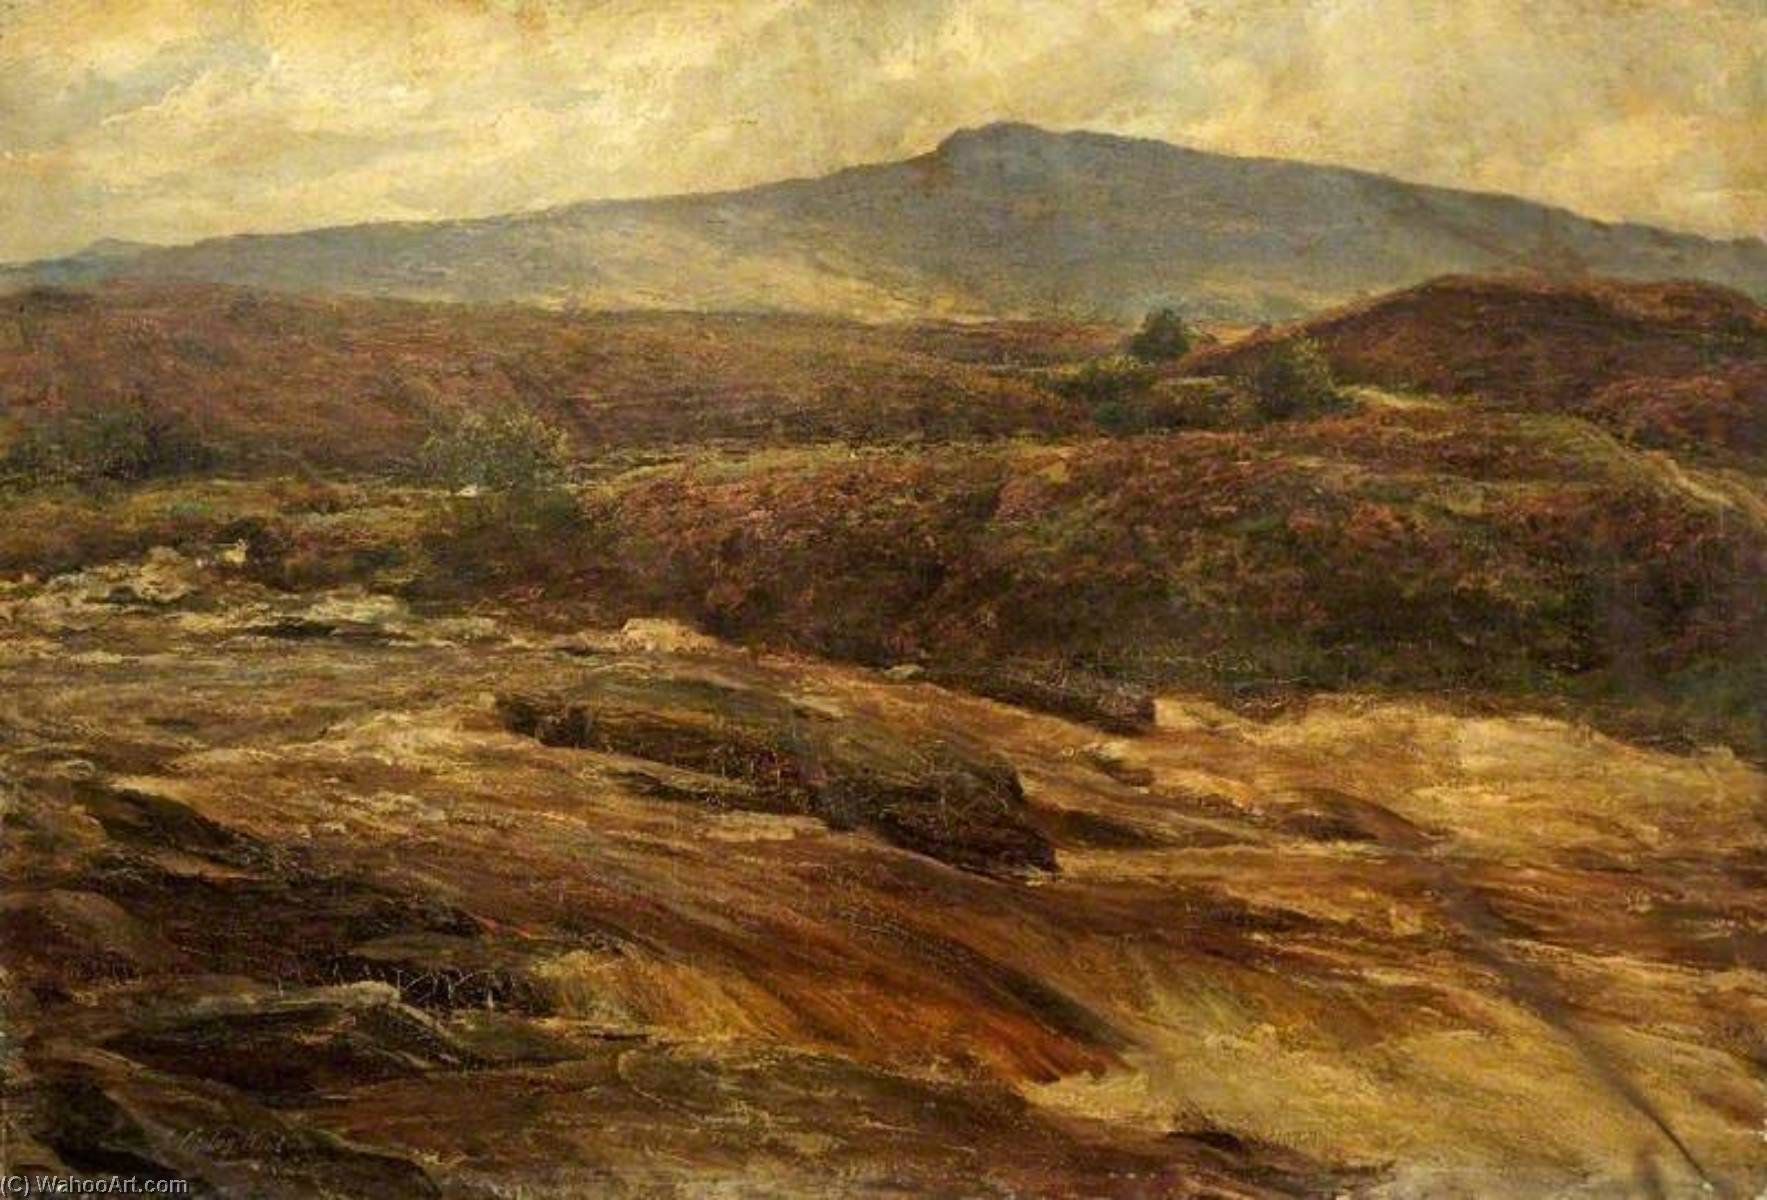 Highland Landscape, Oil On Canvas by George Ogilvy Reid